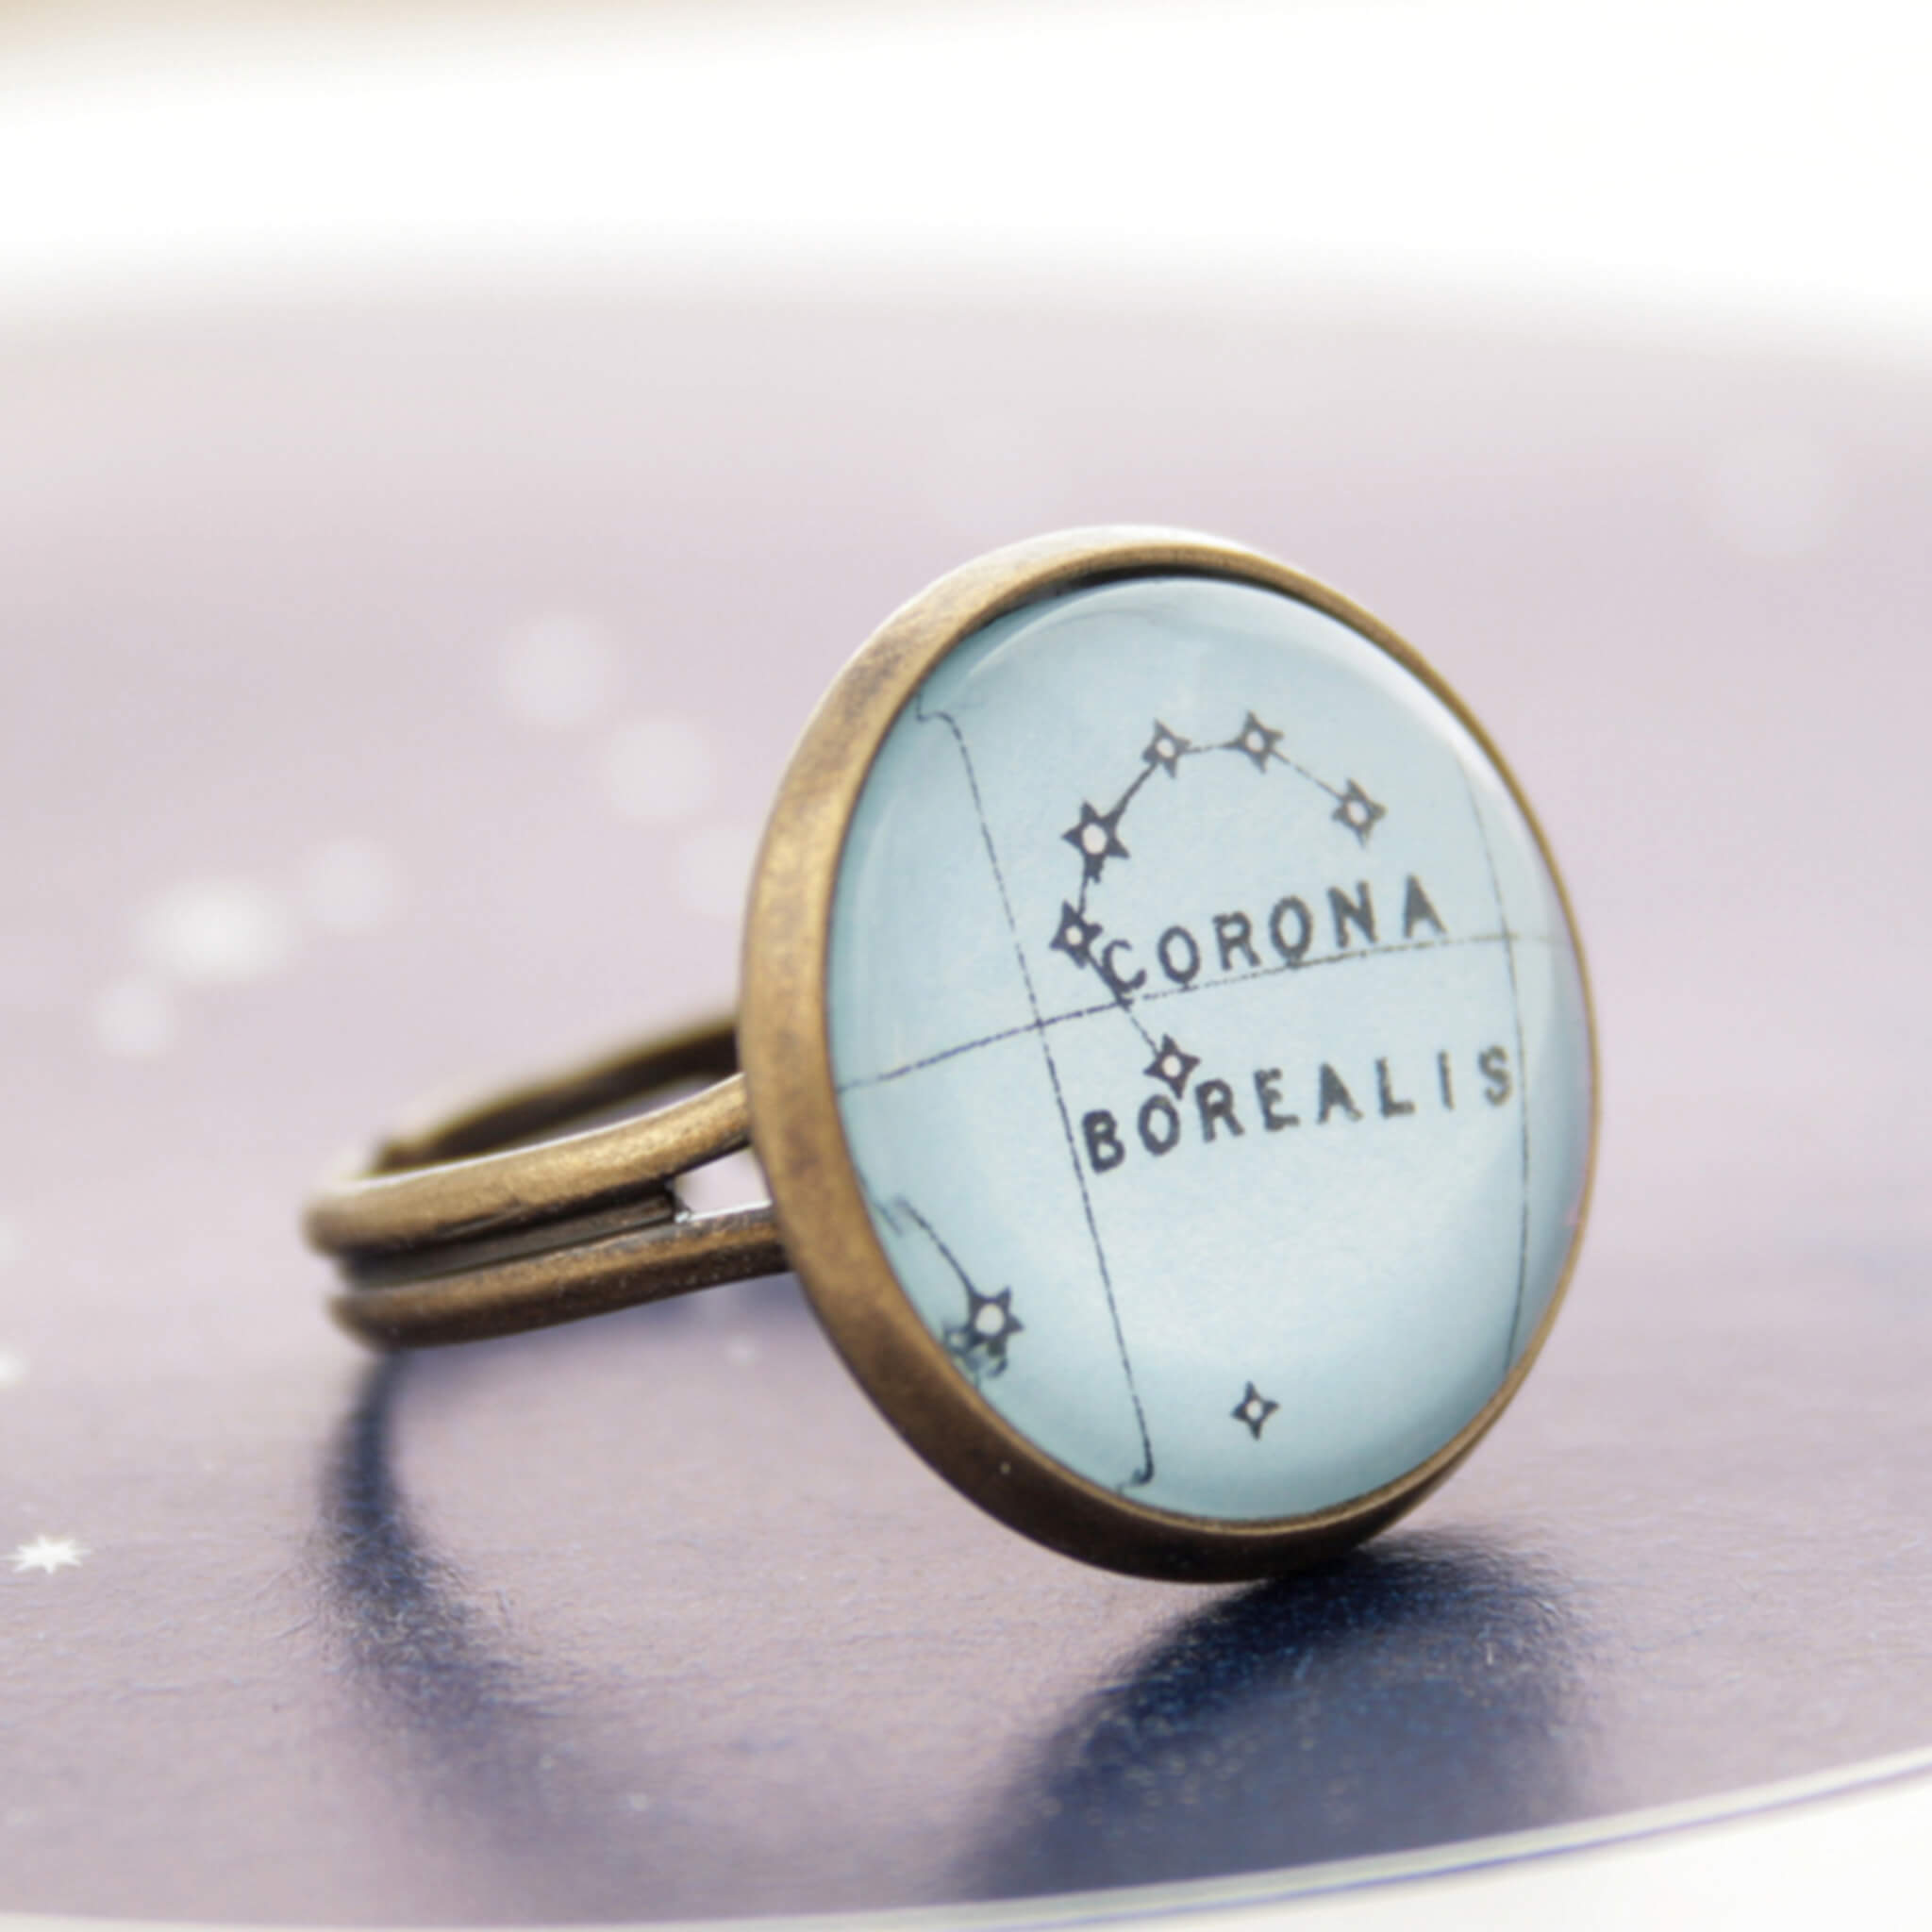 Corona Borealis Constellation ring in bronze color